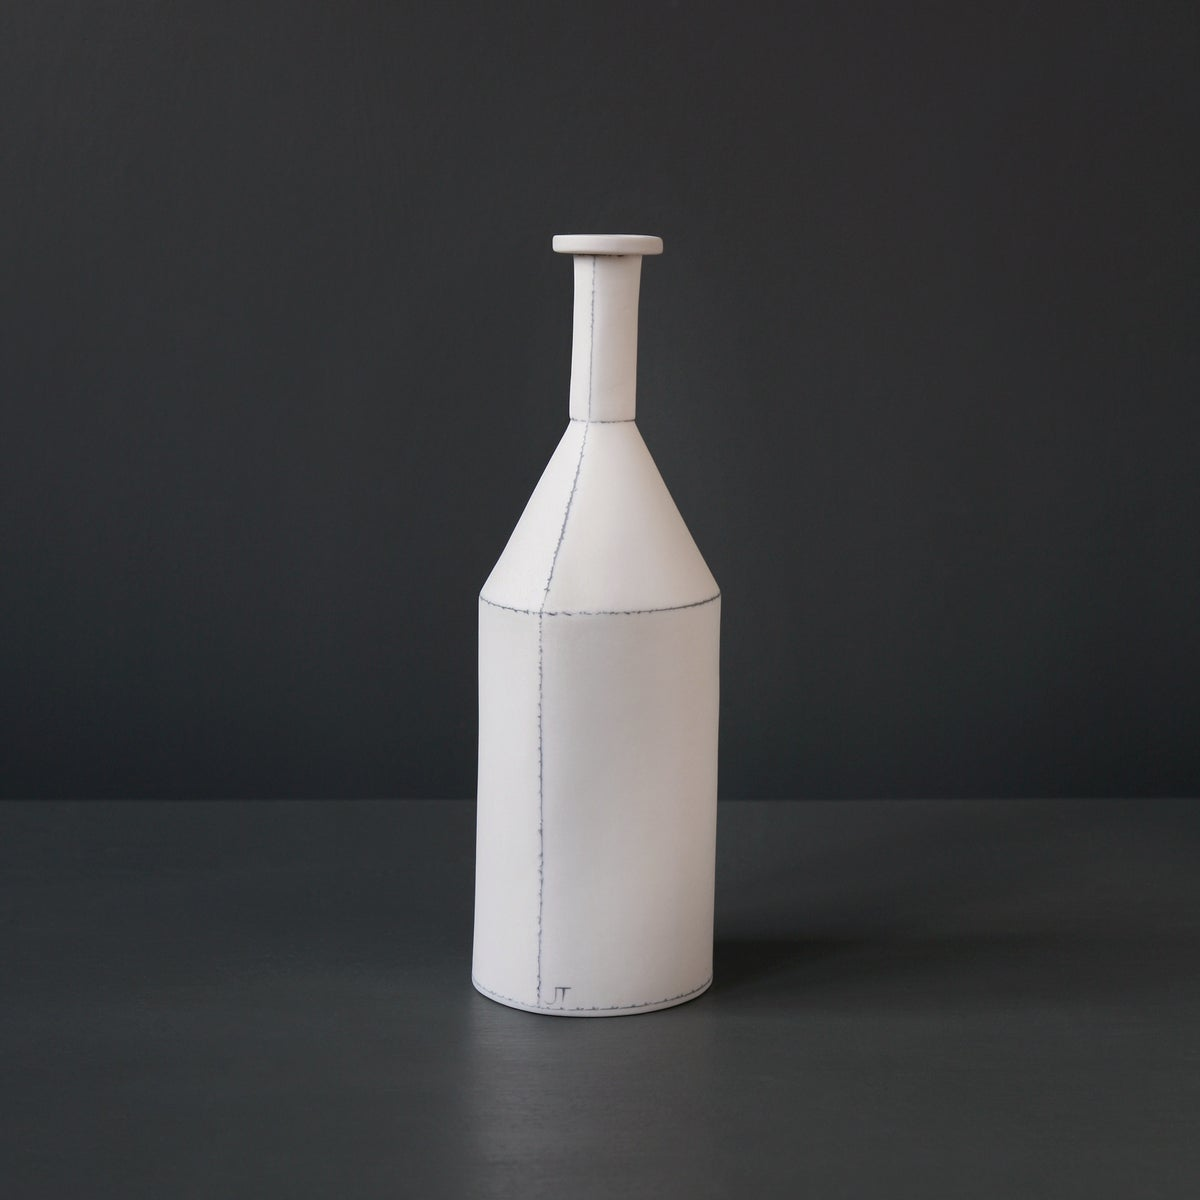 Image of Medium Tall 'Still Life' Bottle by Jessica Thorn.